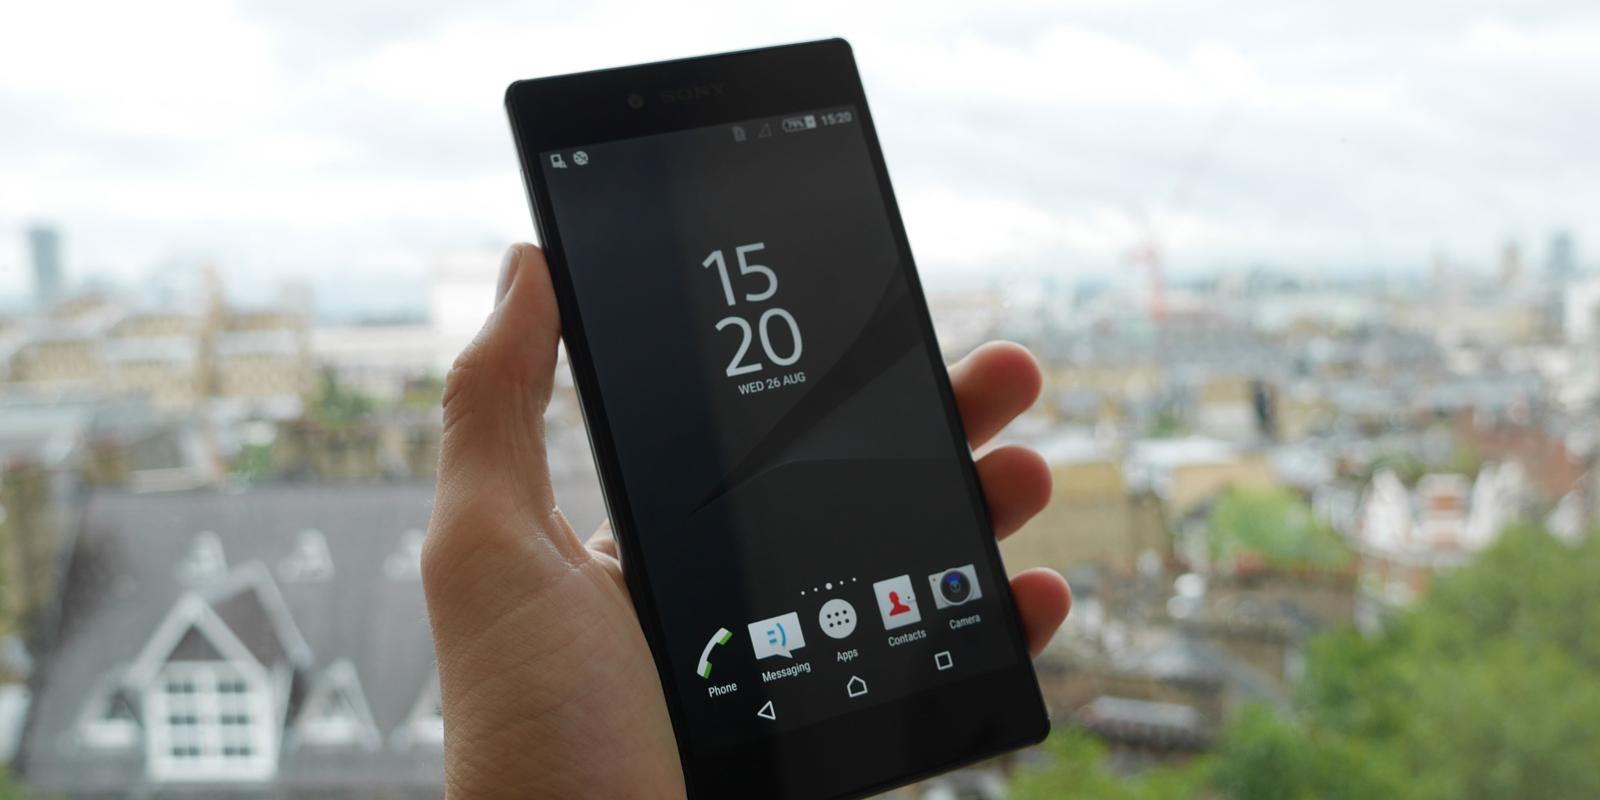 Sony Creates Xperia Z5 Premium With Worlds First 4K Display recommend